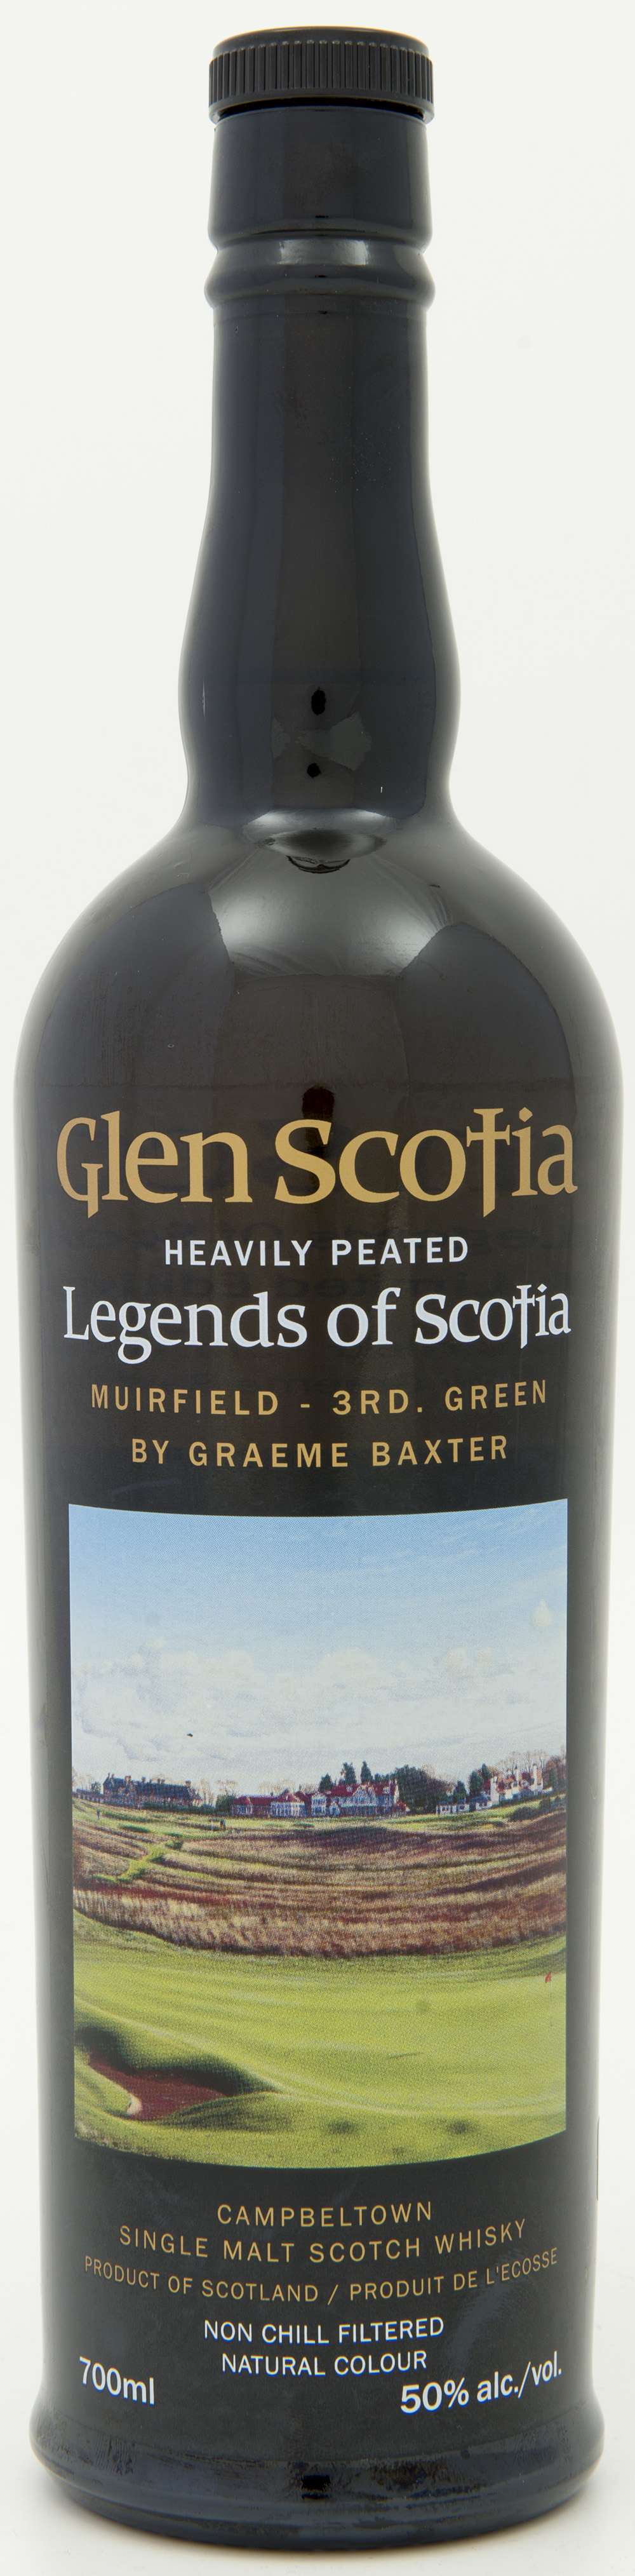 Billede: DSC_8220 - Glen Scotia - Heavily Peated - Legends of Scotia - bottle front.jpg